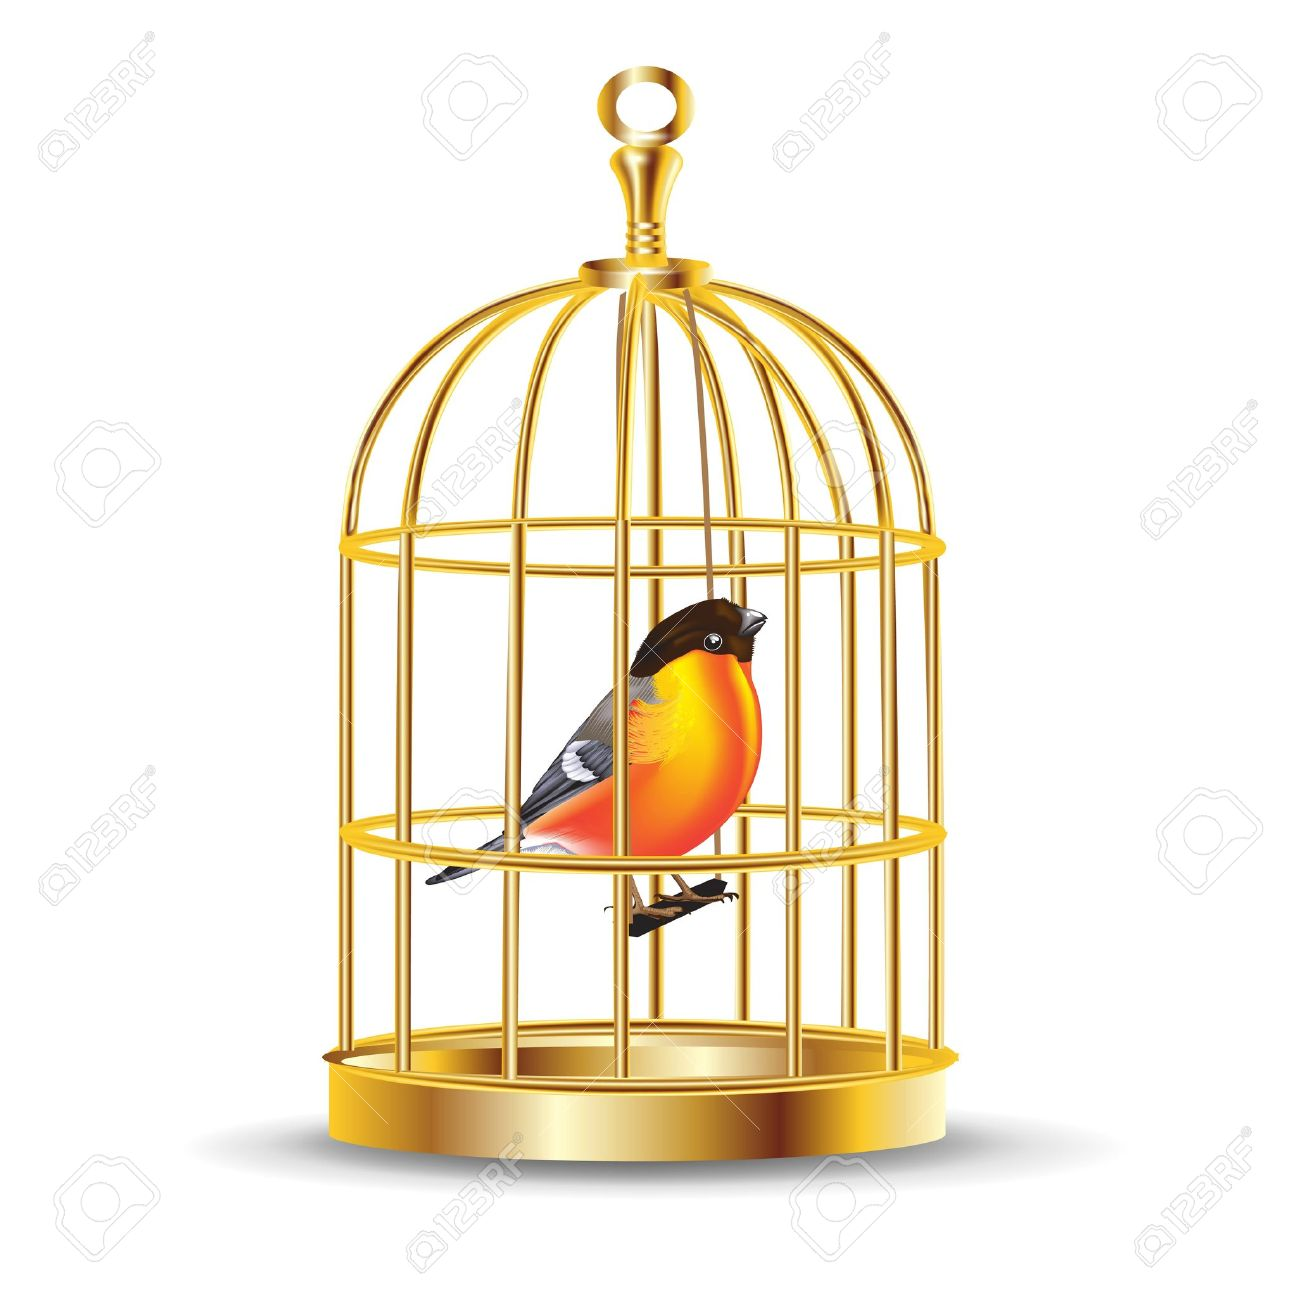 Cage clipart gold Cage collection clipart Download clipart